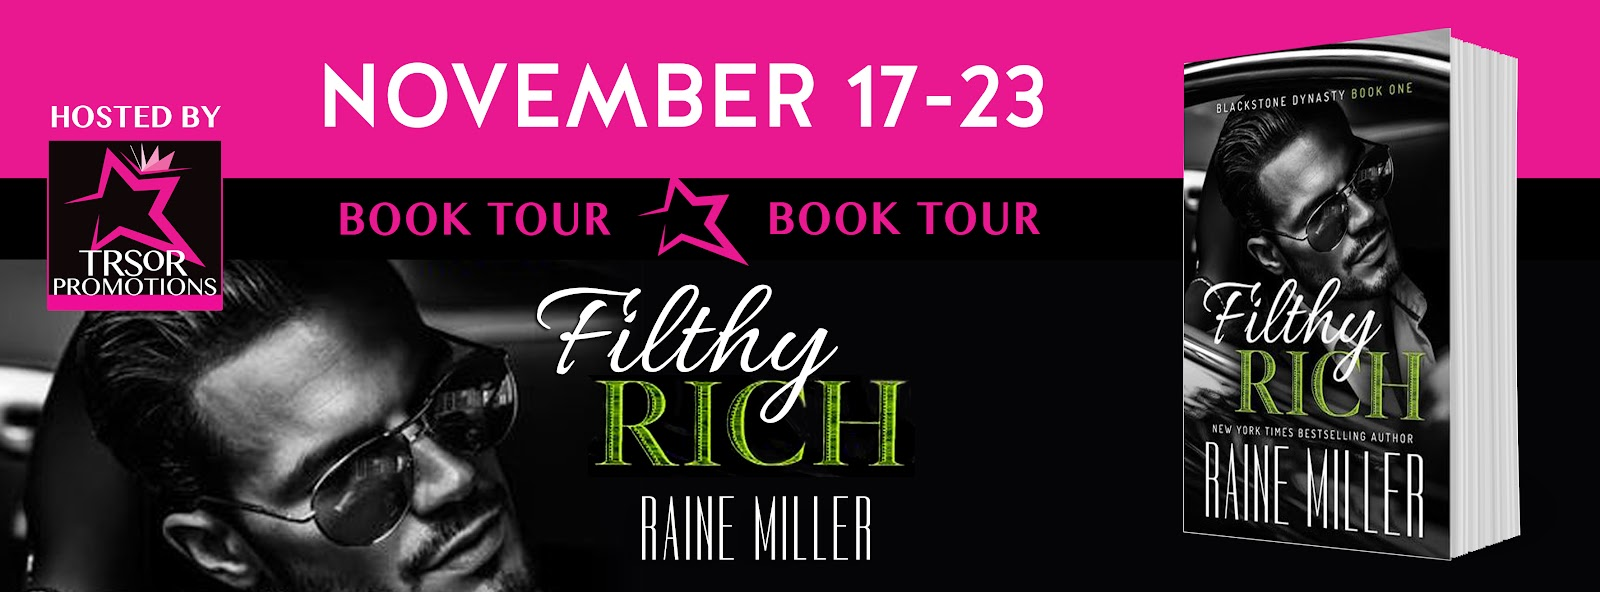 FILTHY_RICH_BOOK_TOUR.jpg